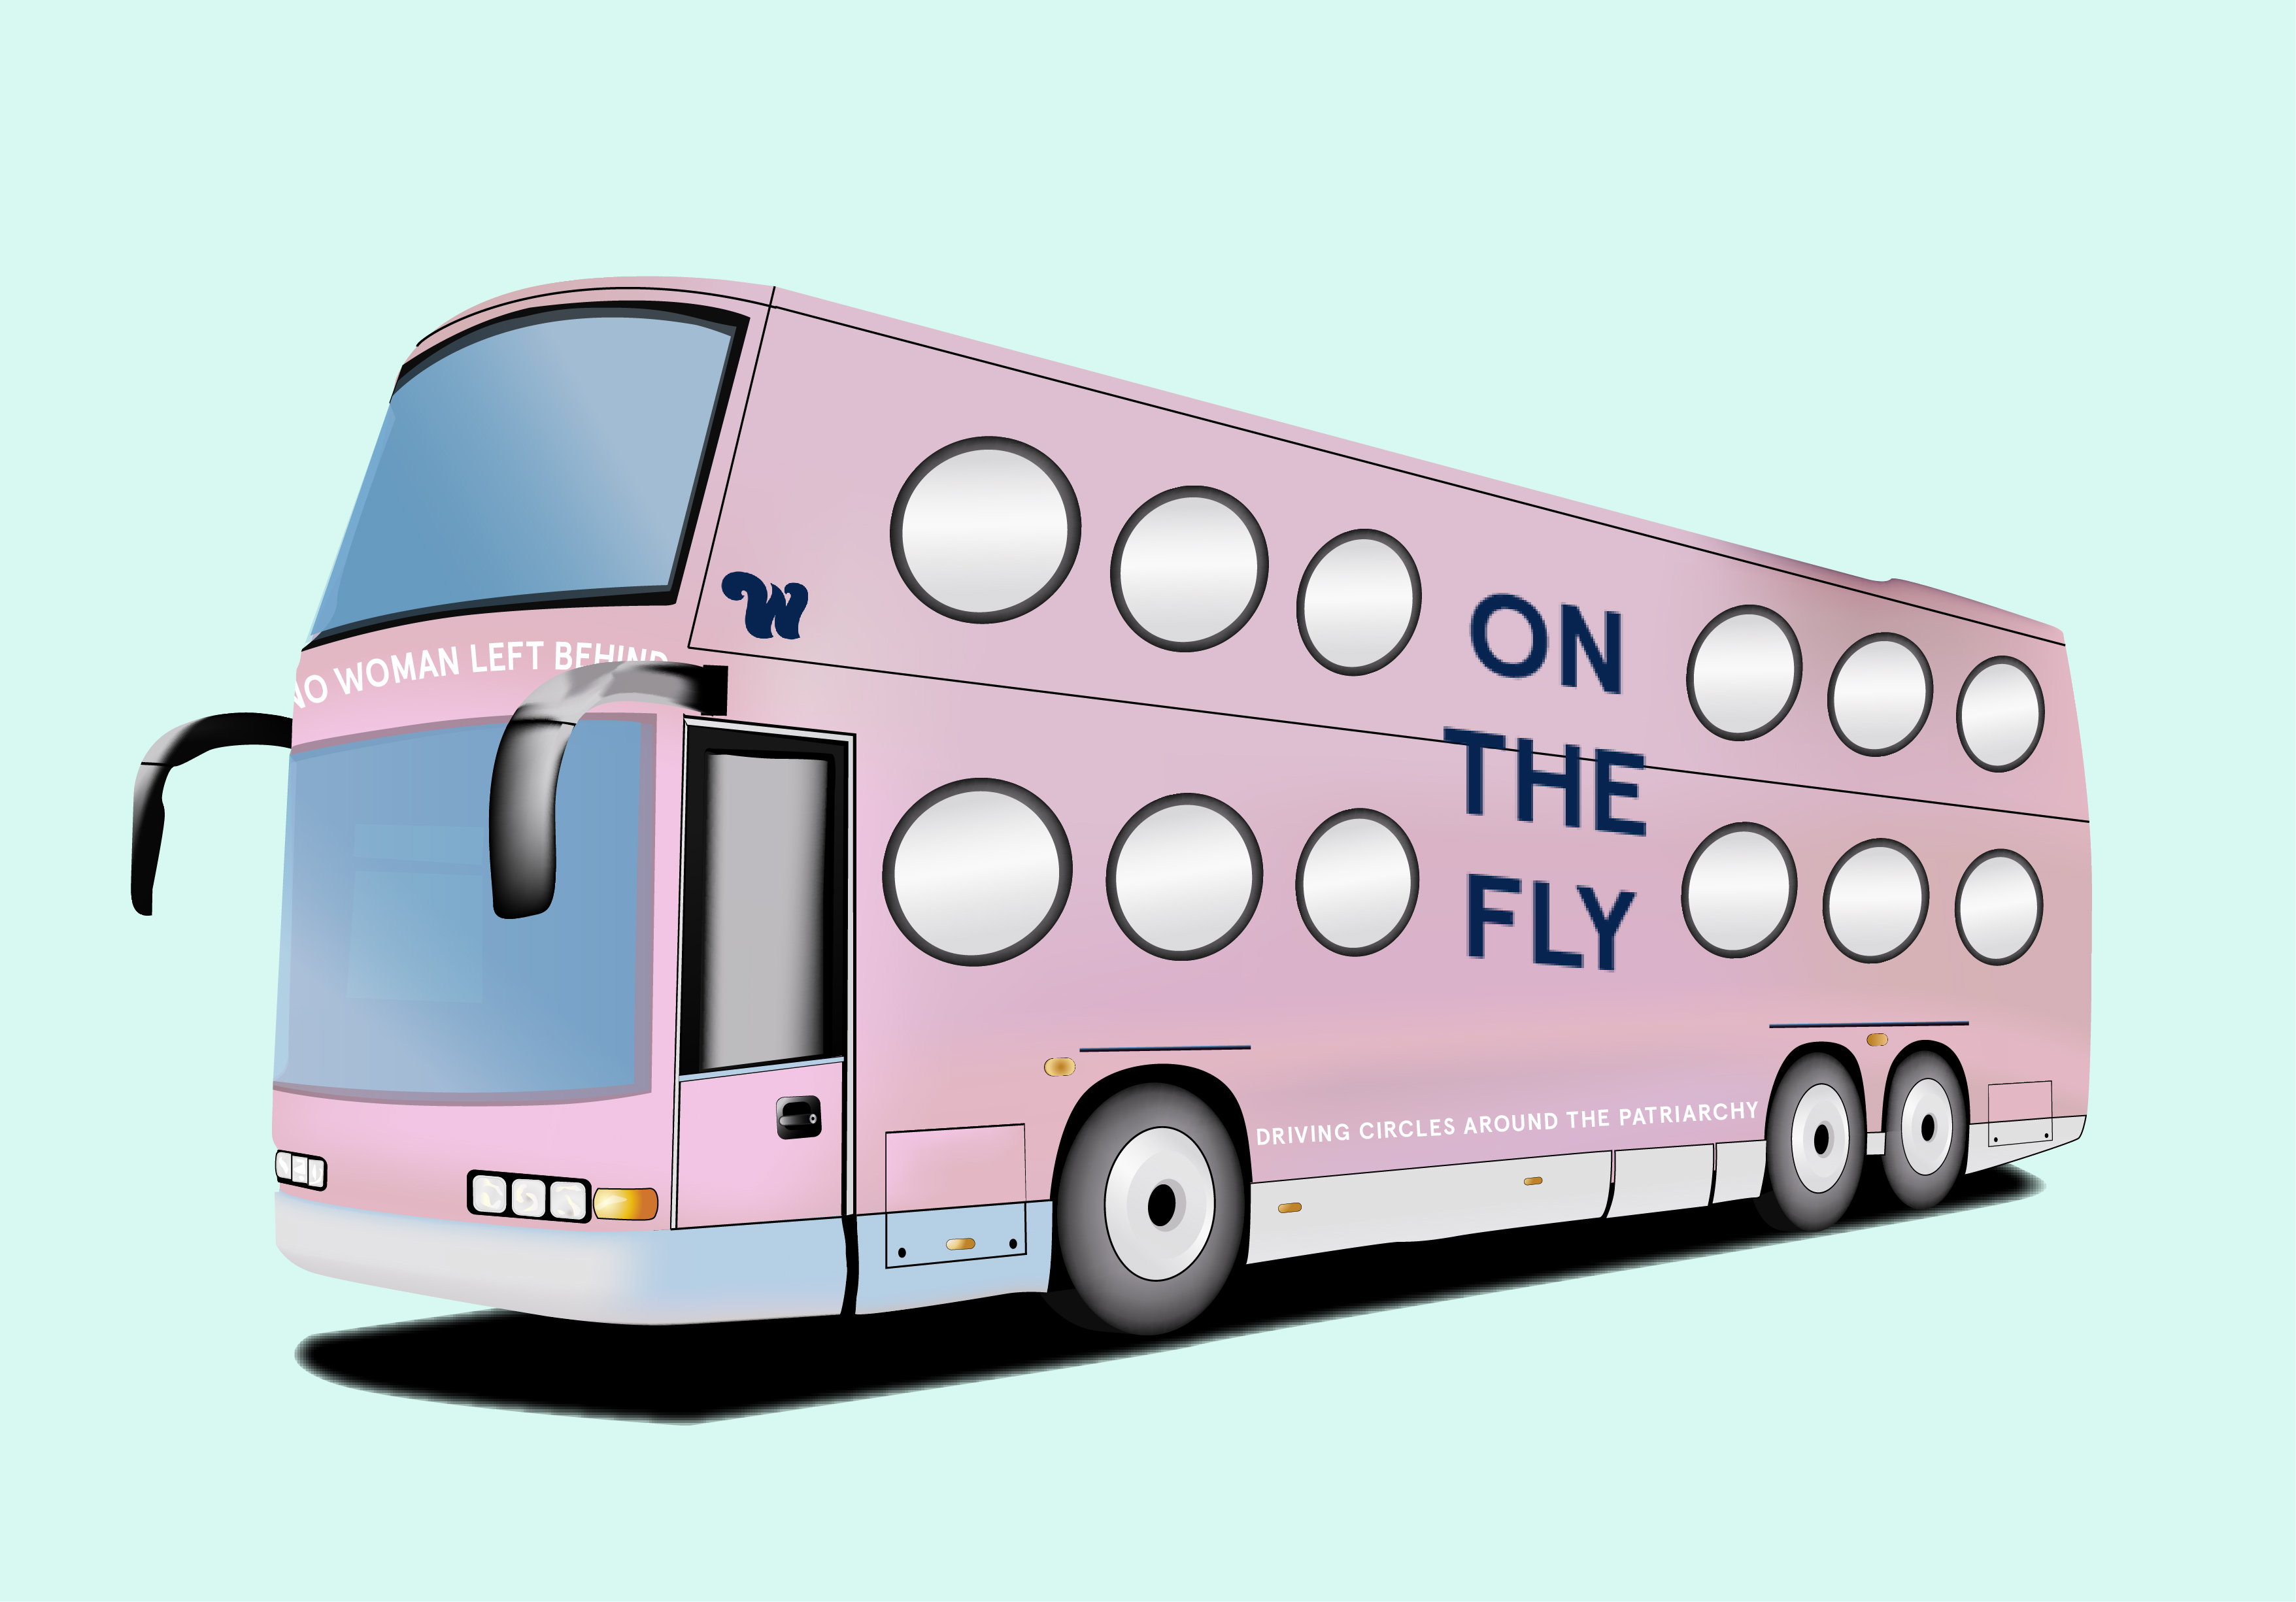 ON THE FLY BUS